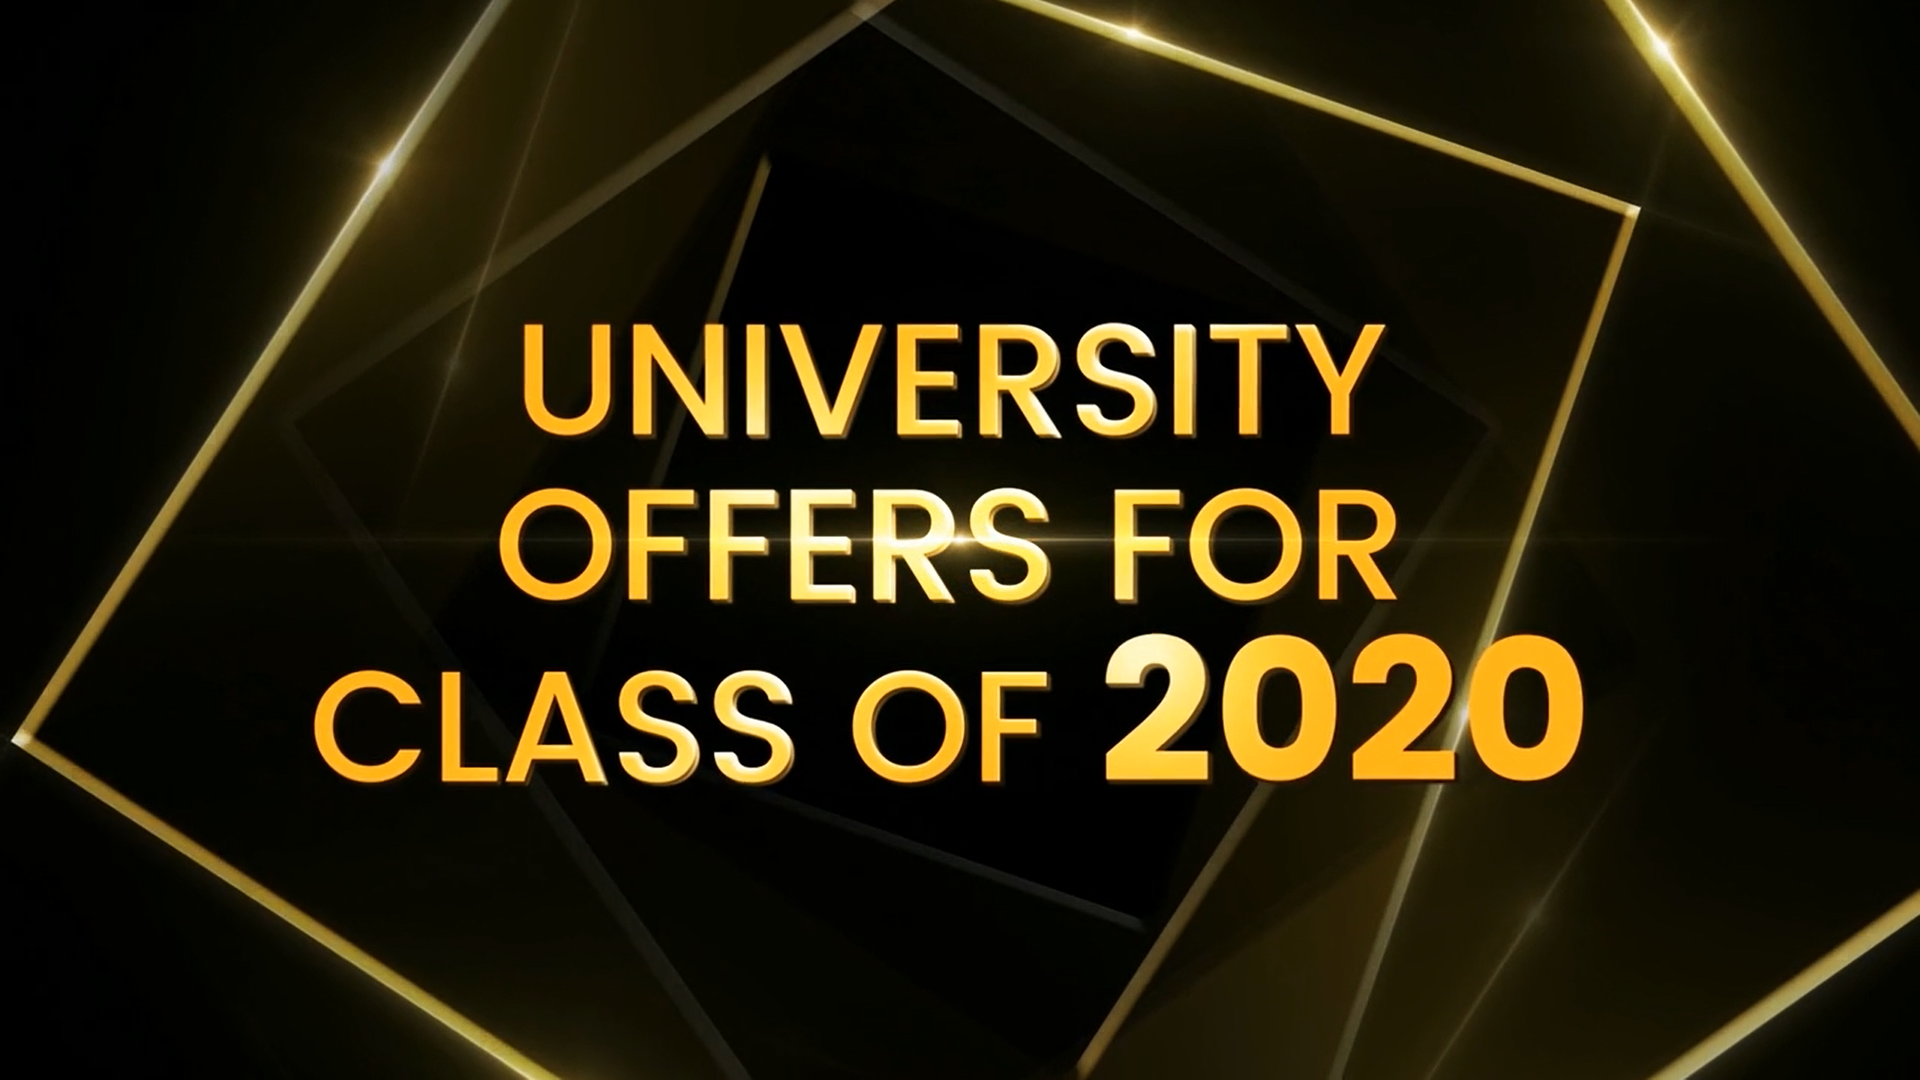 University Offers for Class of 2020